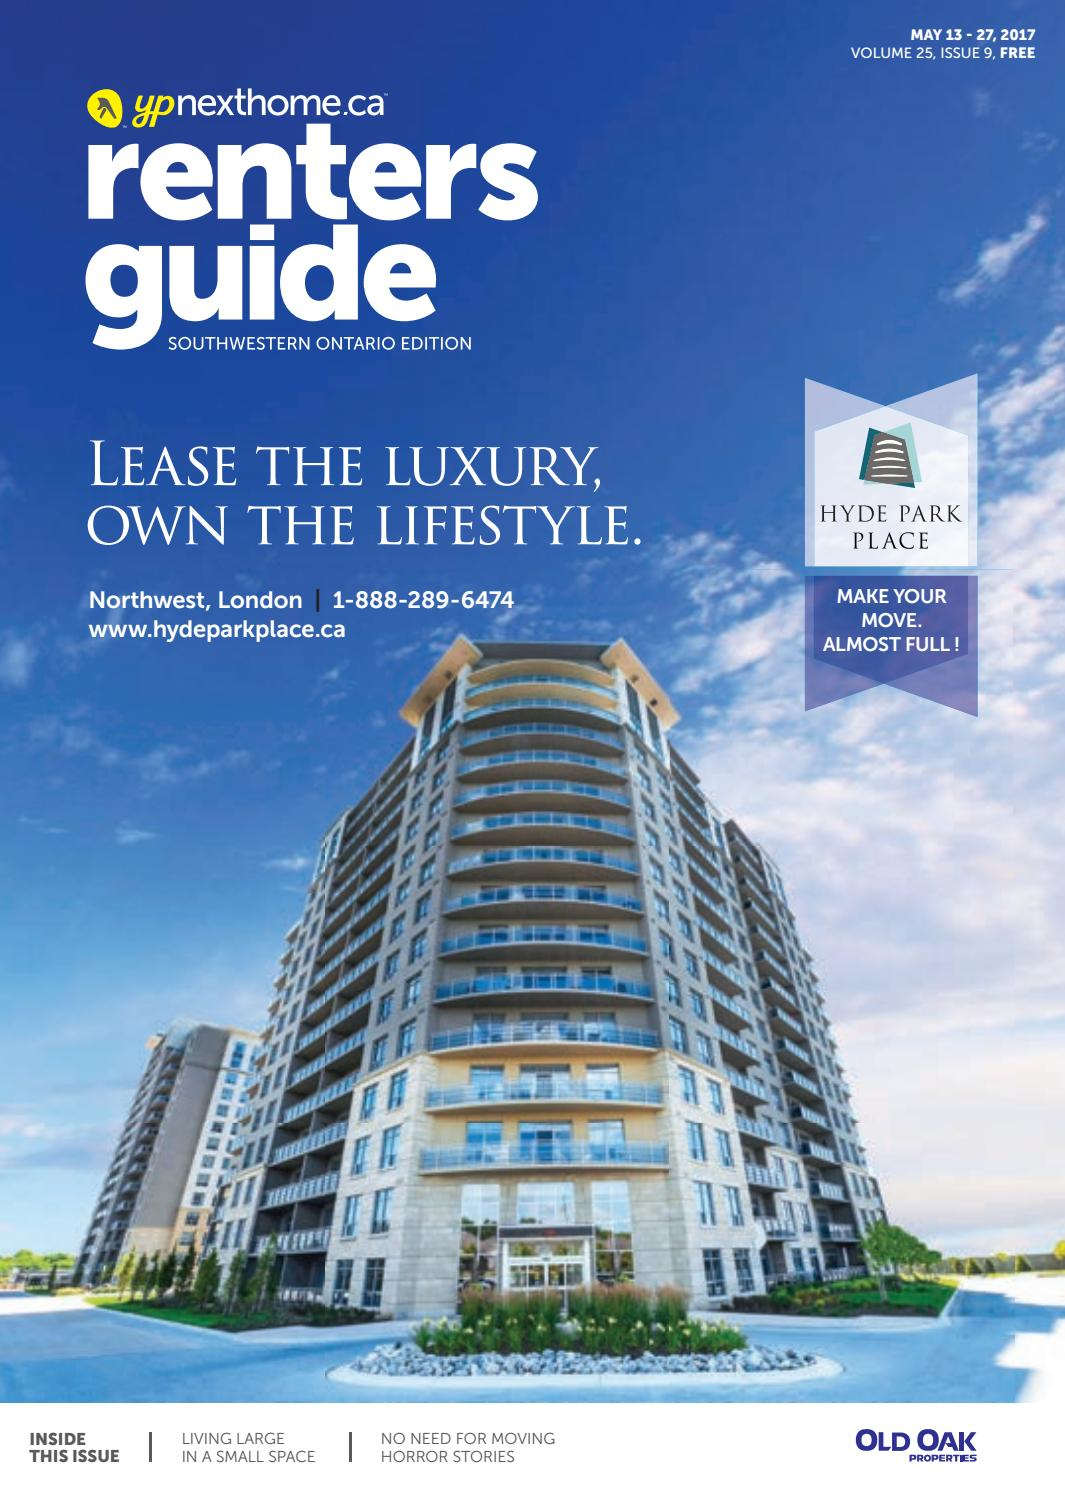 South Western Ontario Renters Guide - 13 May, 2017 by NextHome - issuu